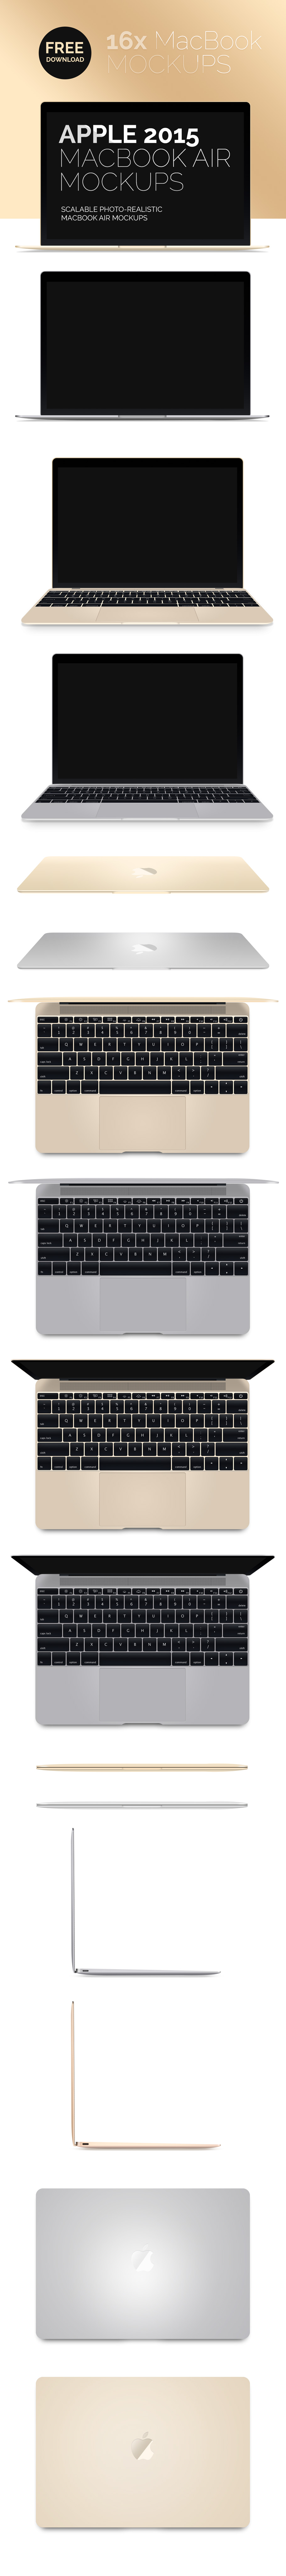 new-macbook-air-mockup